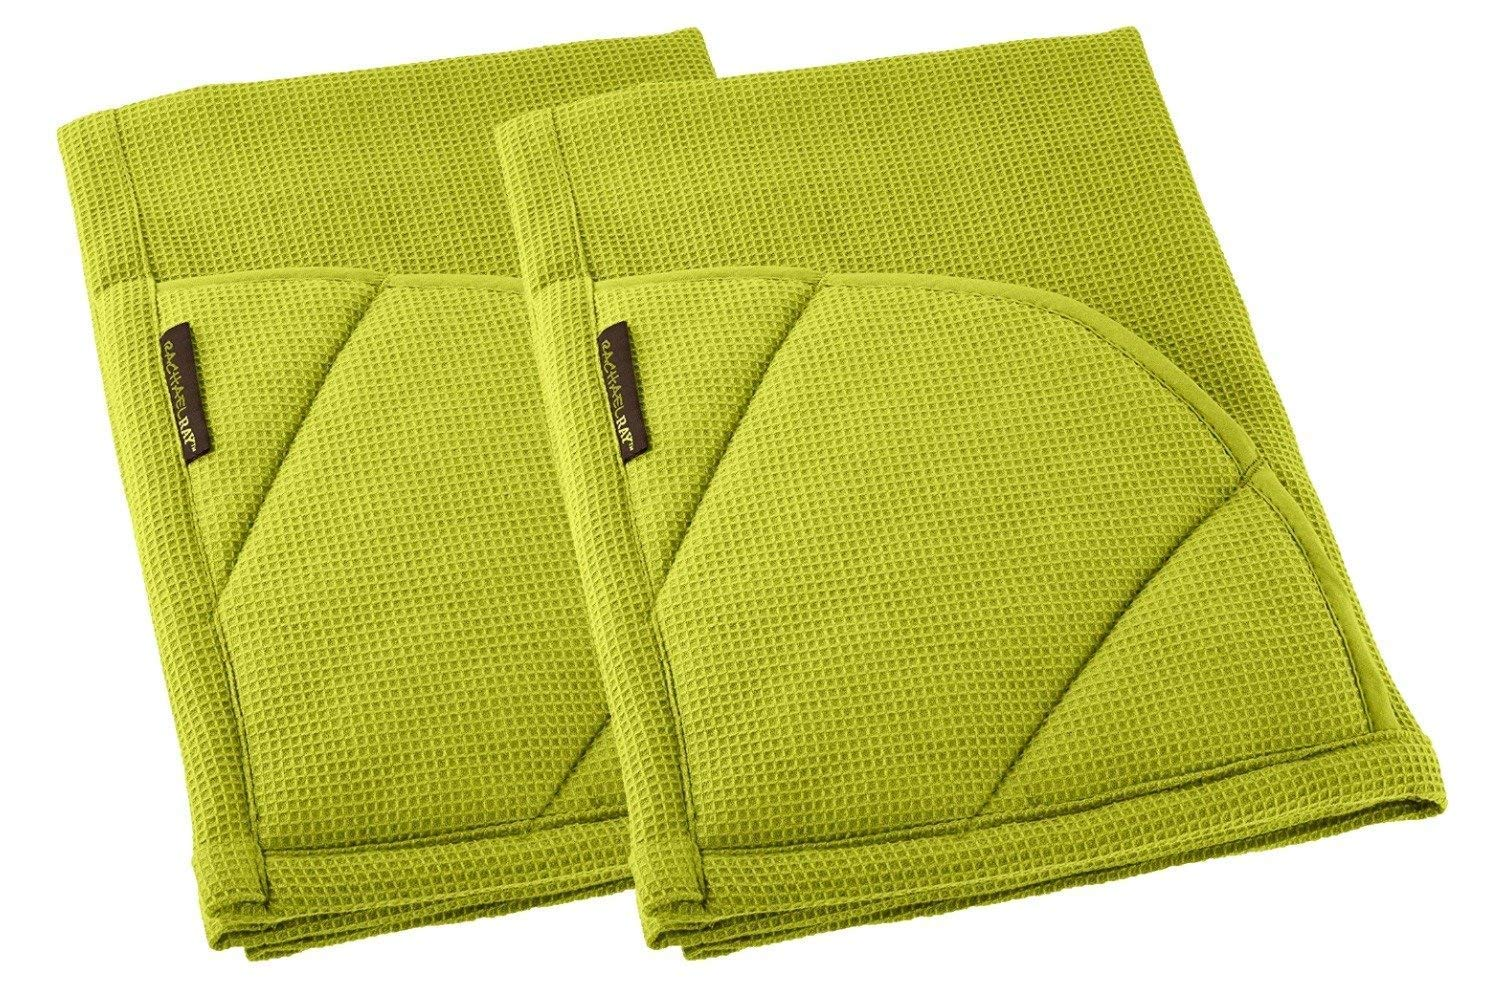 Rachael Ray Kitchen Towel and Oven Glove Moppine – A 2-in-1 Ultra Absorbent Kitchen Towel with Heat Resistant Pot-Holder Padded Pockets to Handle Hot Cookware and Bakeware - Celery Green/Pack of 2